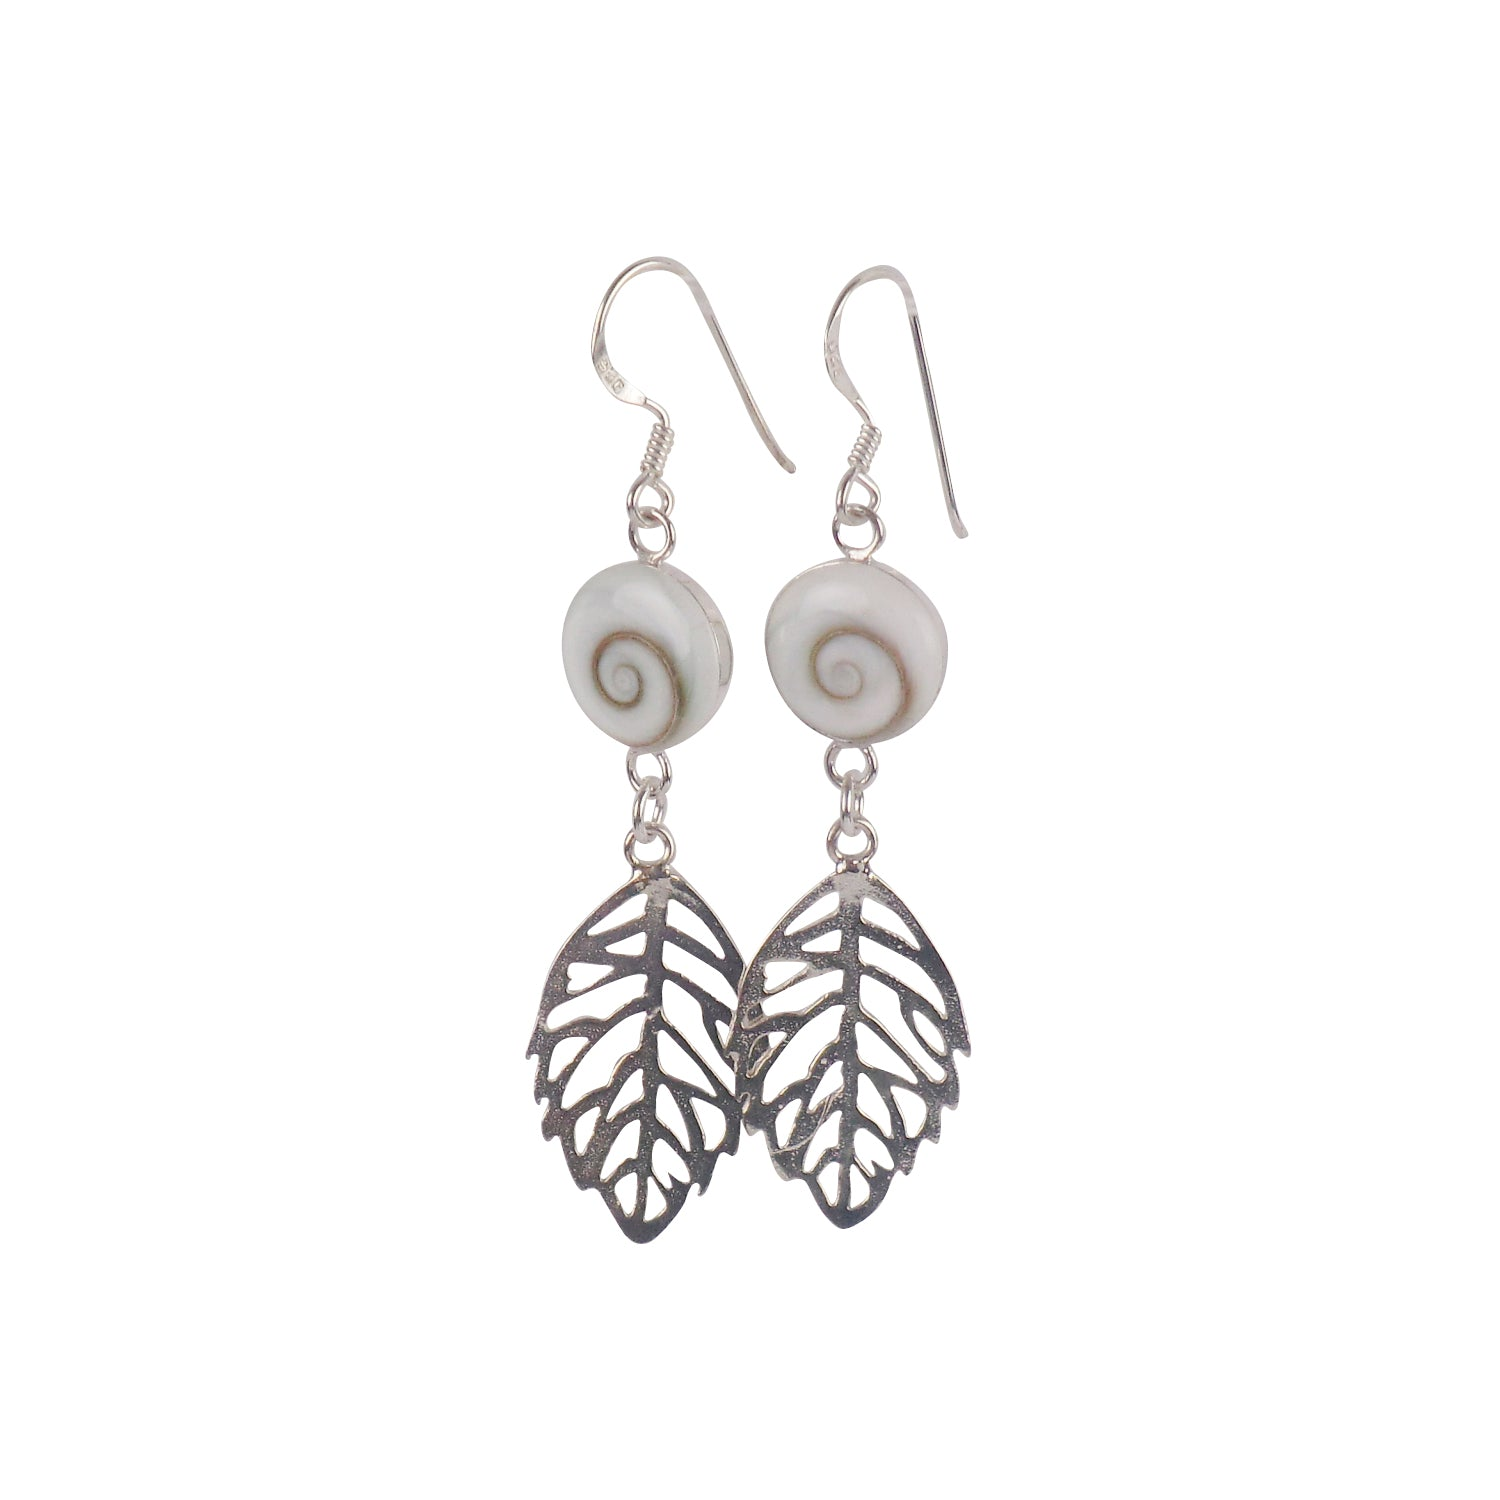 Round Stone with Silver Leaf Earrings - Matico